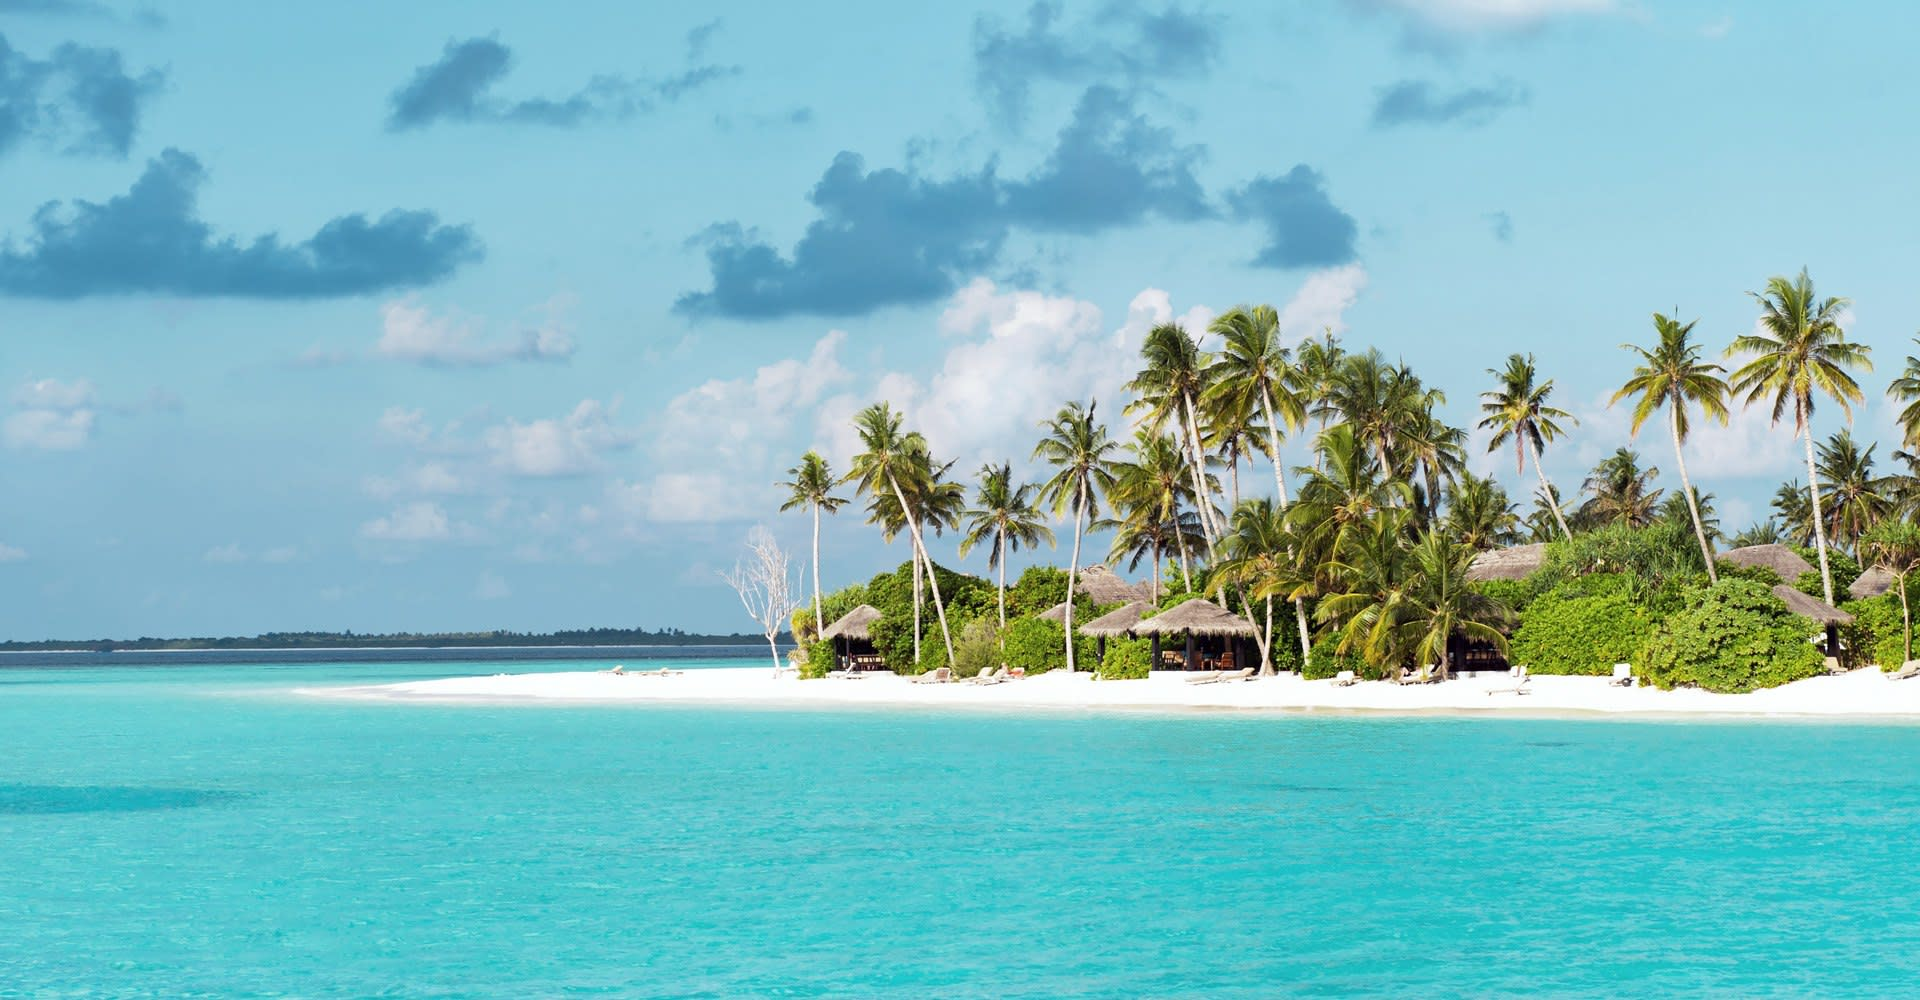 Tropical Beach Maldives Asia